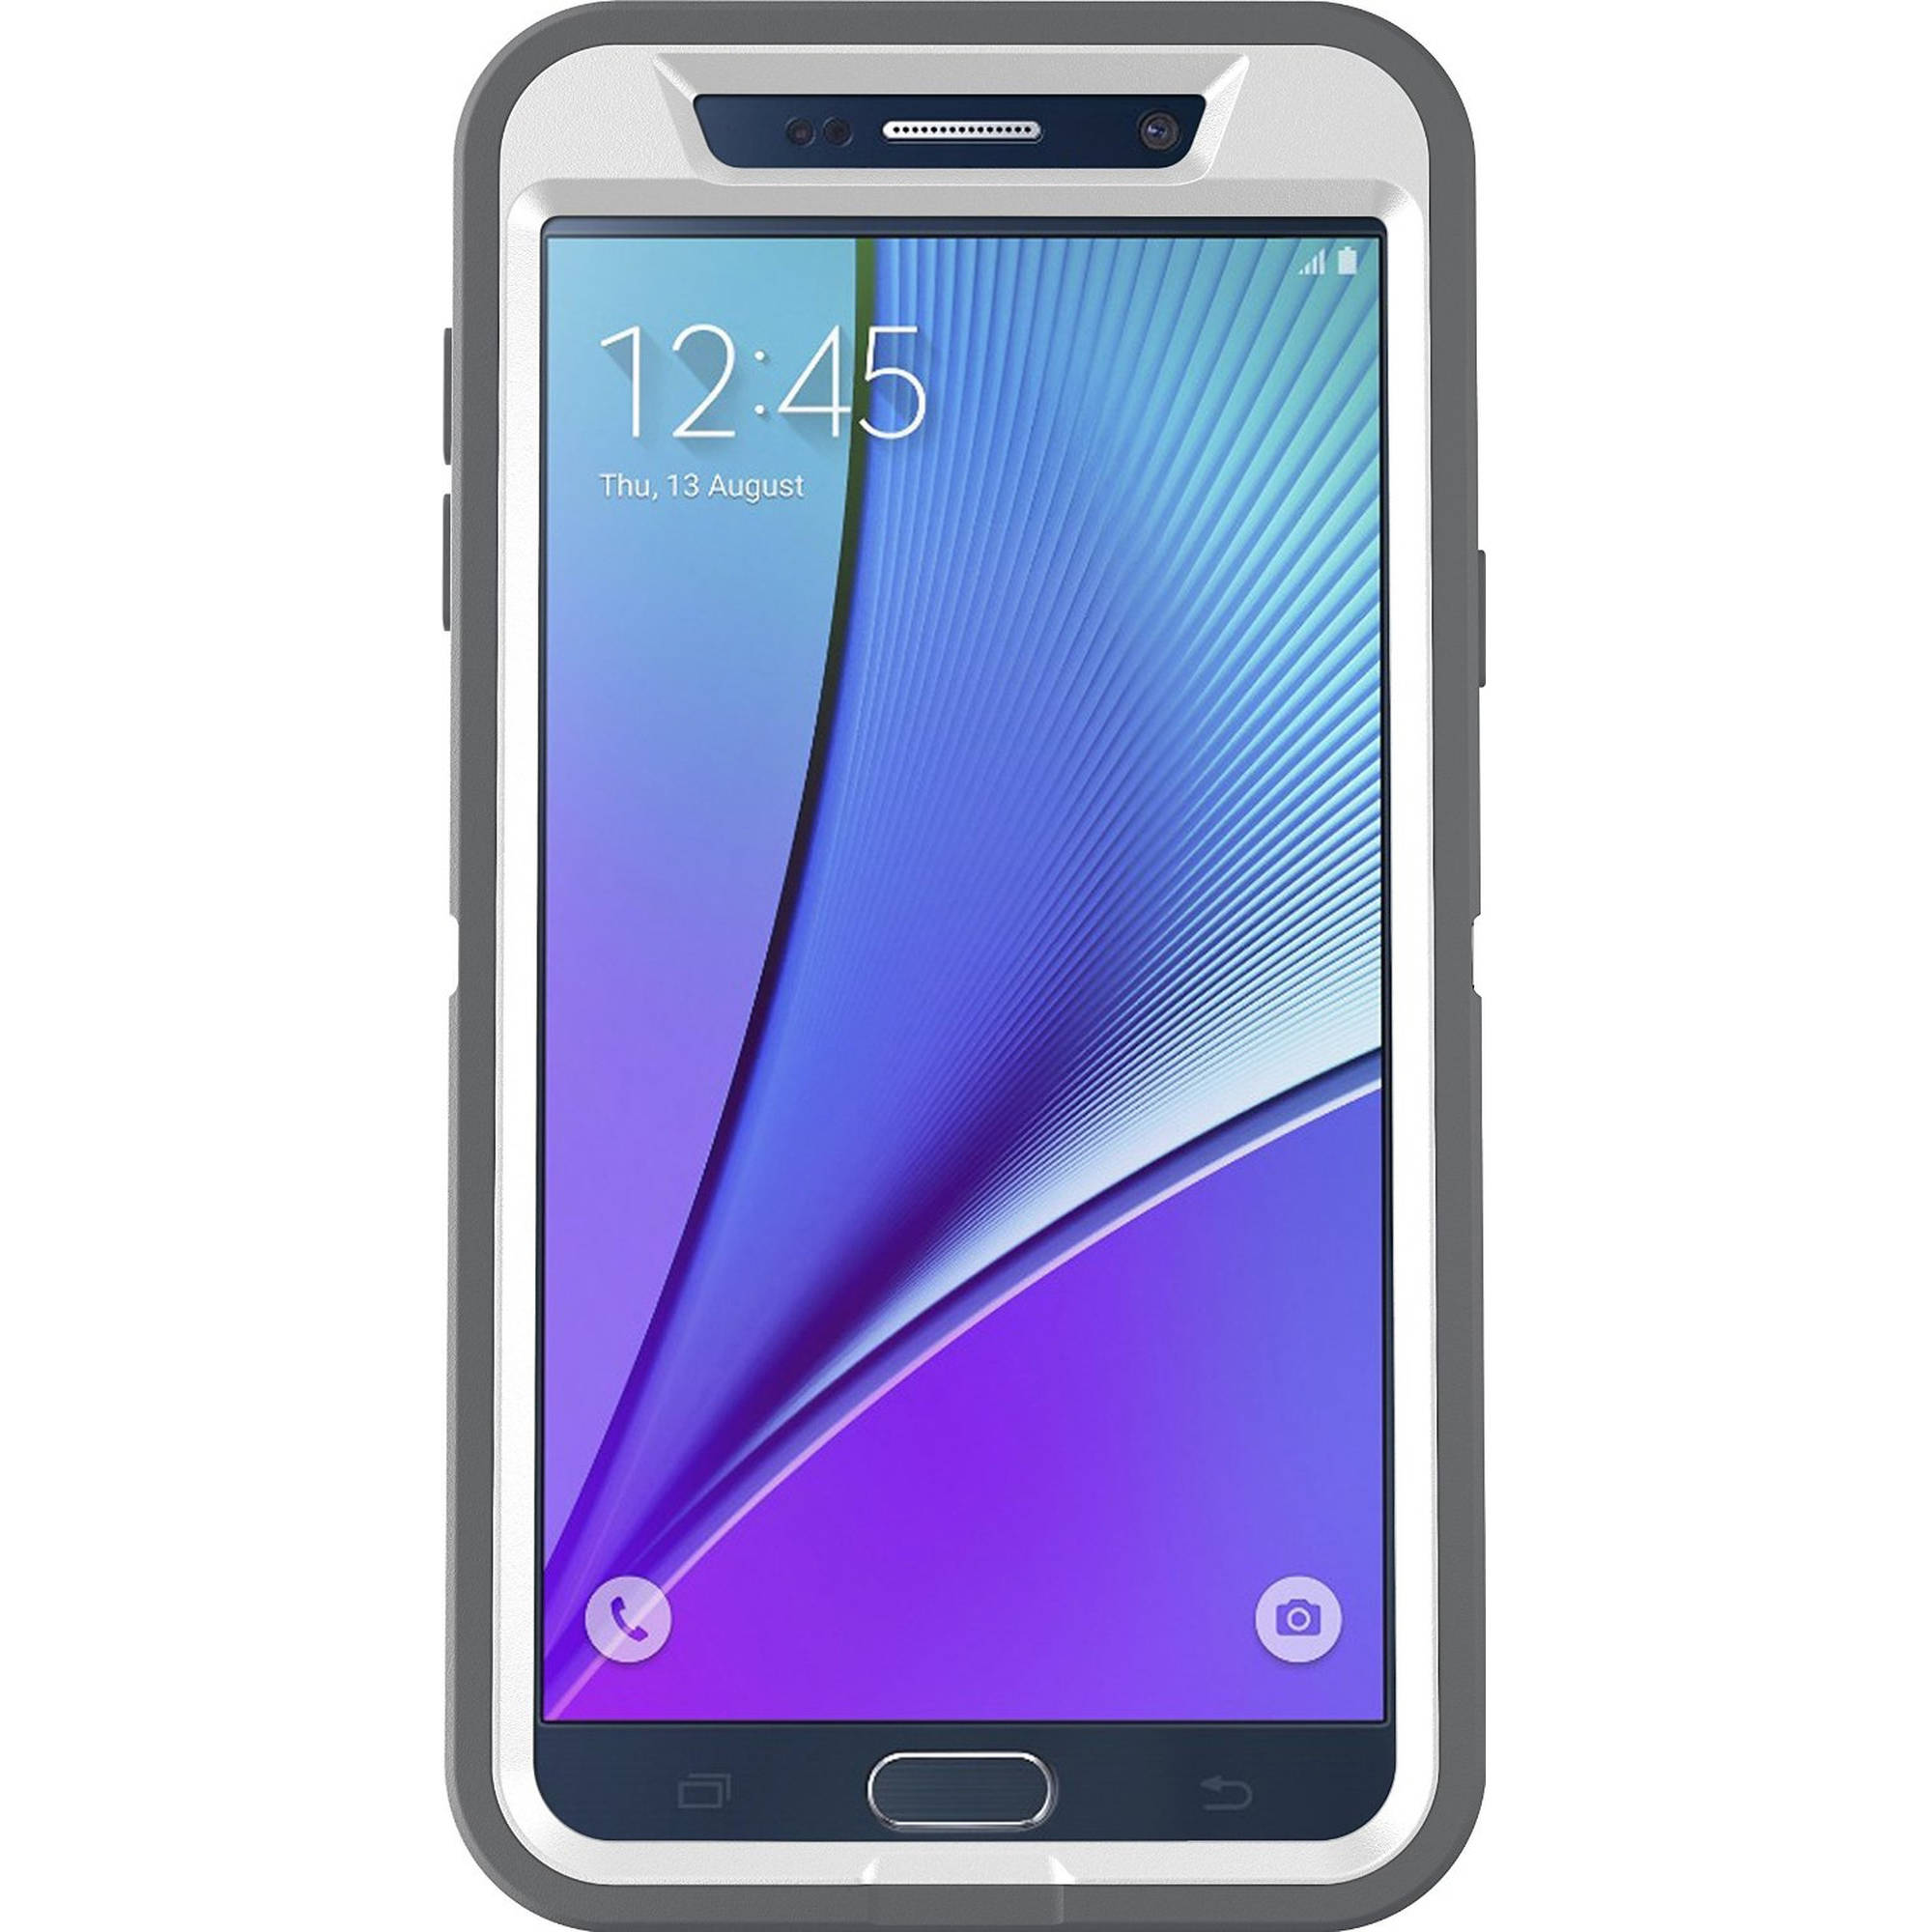 on sale 1d1f3 58f78 Galaxy note 5 Otterbox defender series case